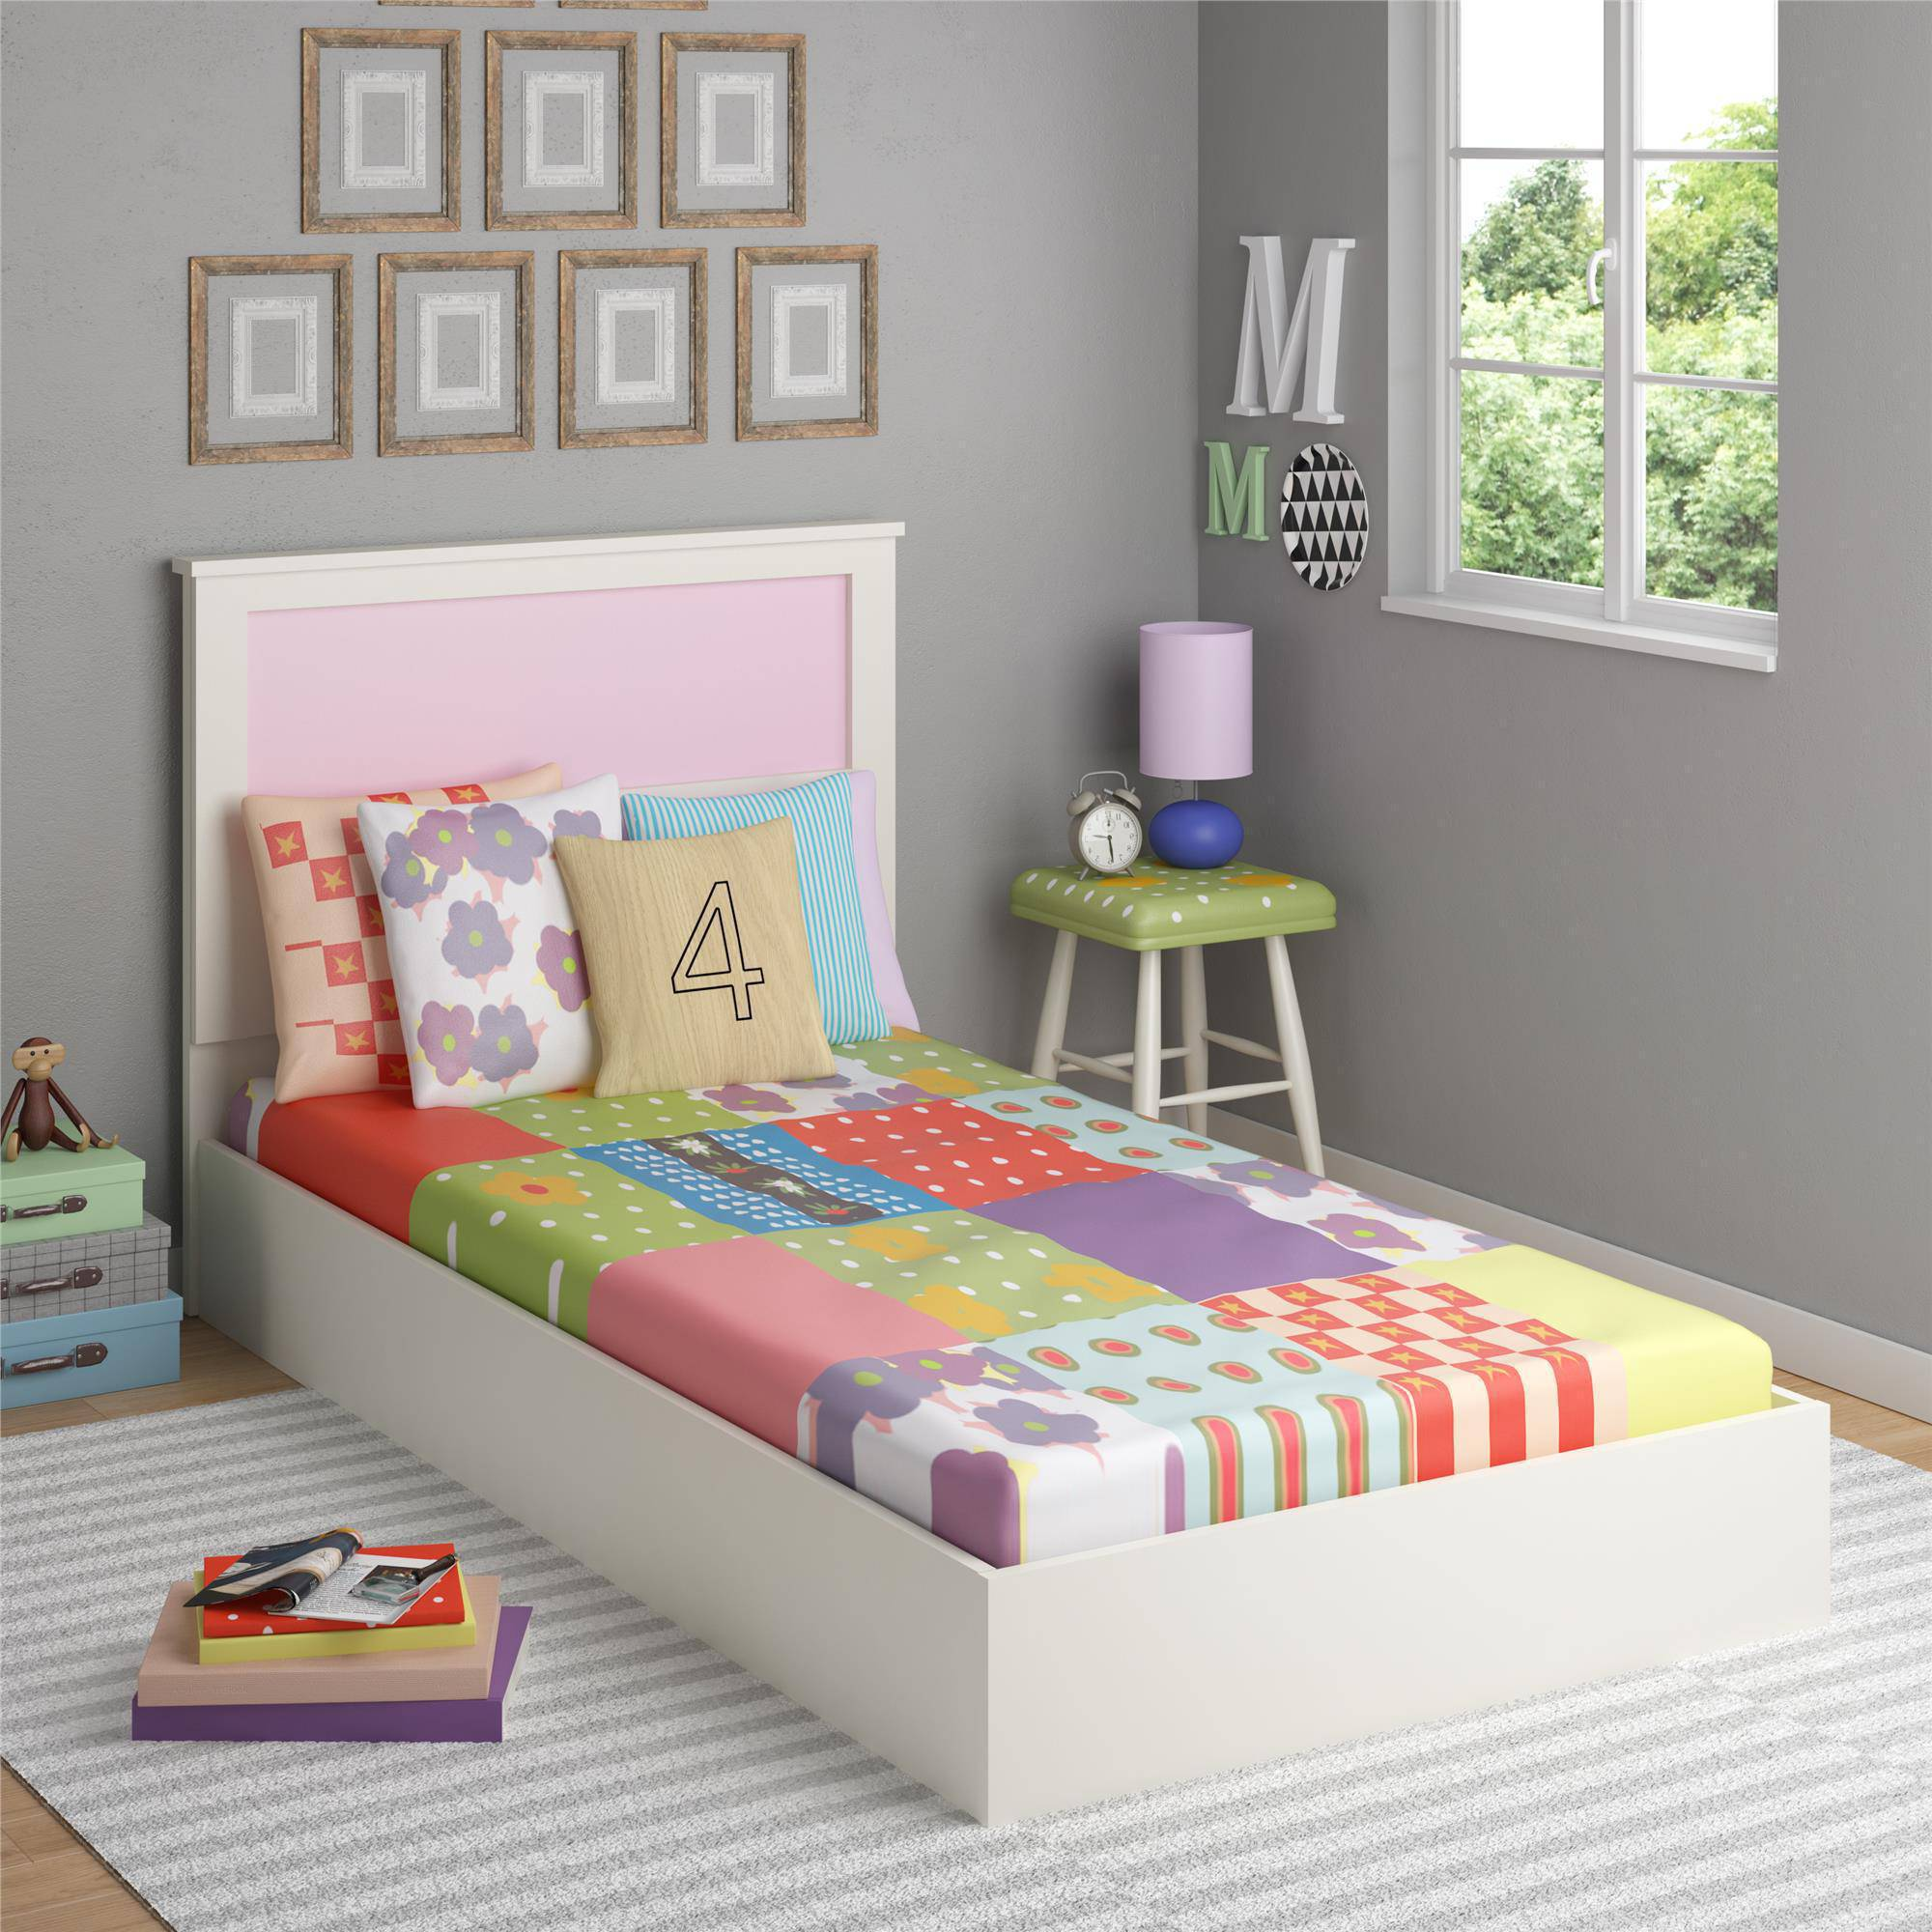 ameriwood home skyler twin bed with reversible headboard white  - ameriwood home skyler twin bed with reversible headboard white walmartcom